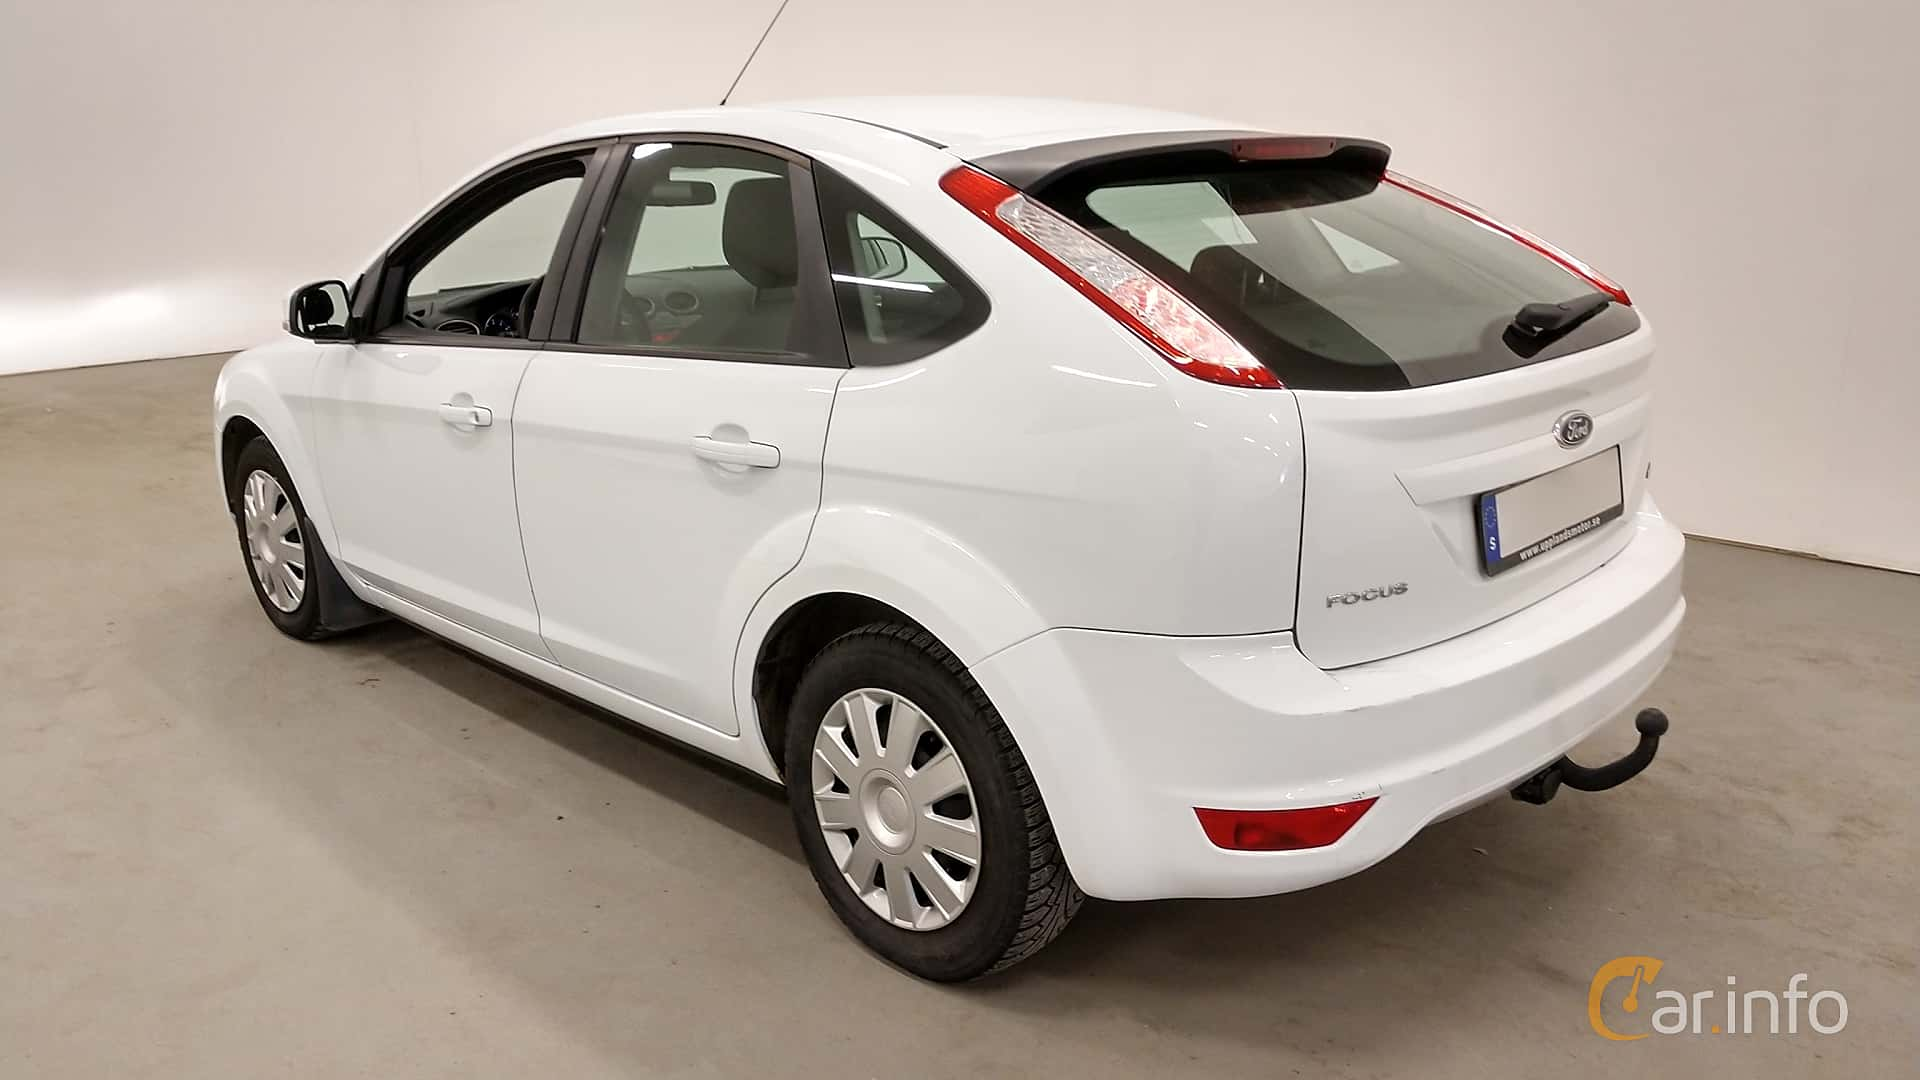 Ford Focus 5-door Hatchback 1.8 Duratec Flexifuel Manual, 125hp, 2008